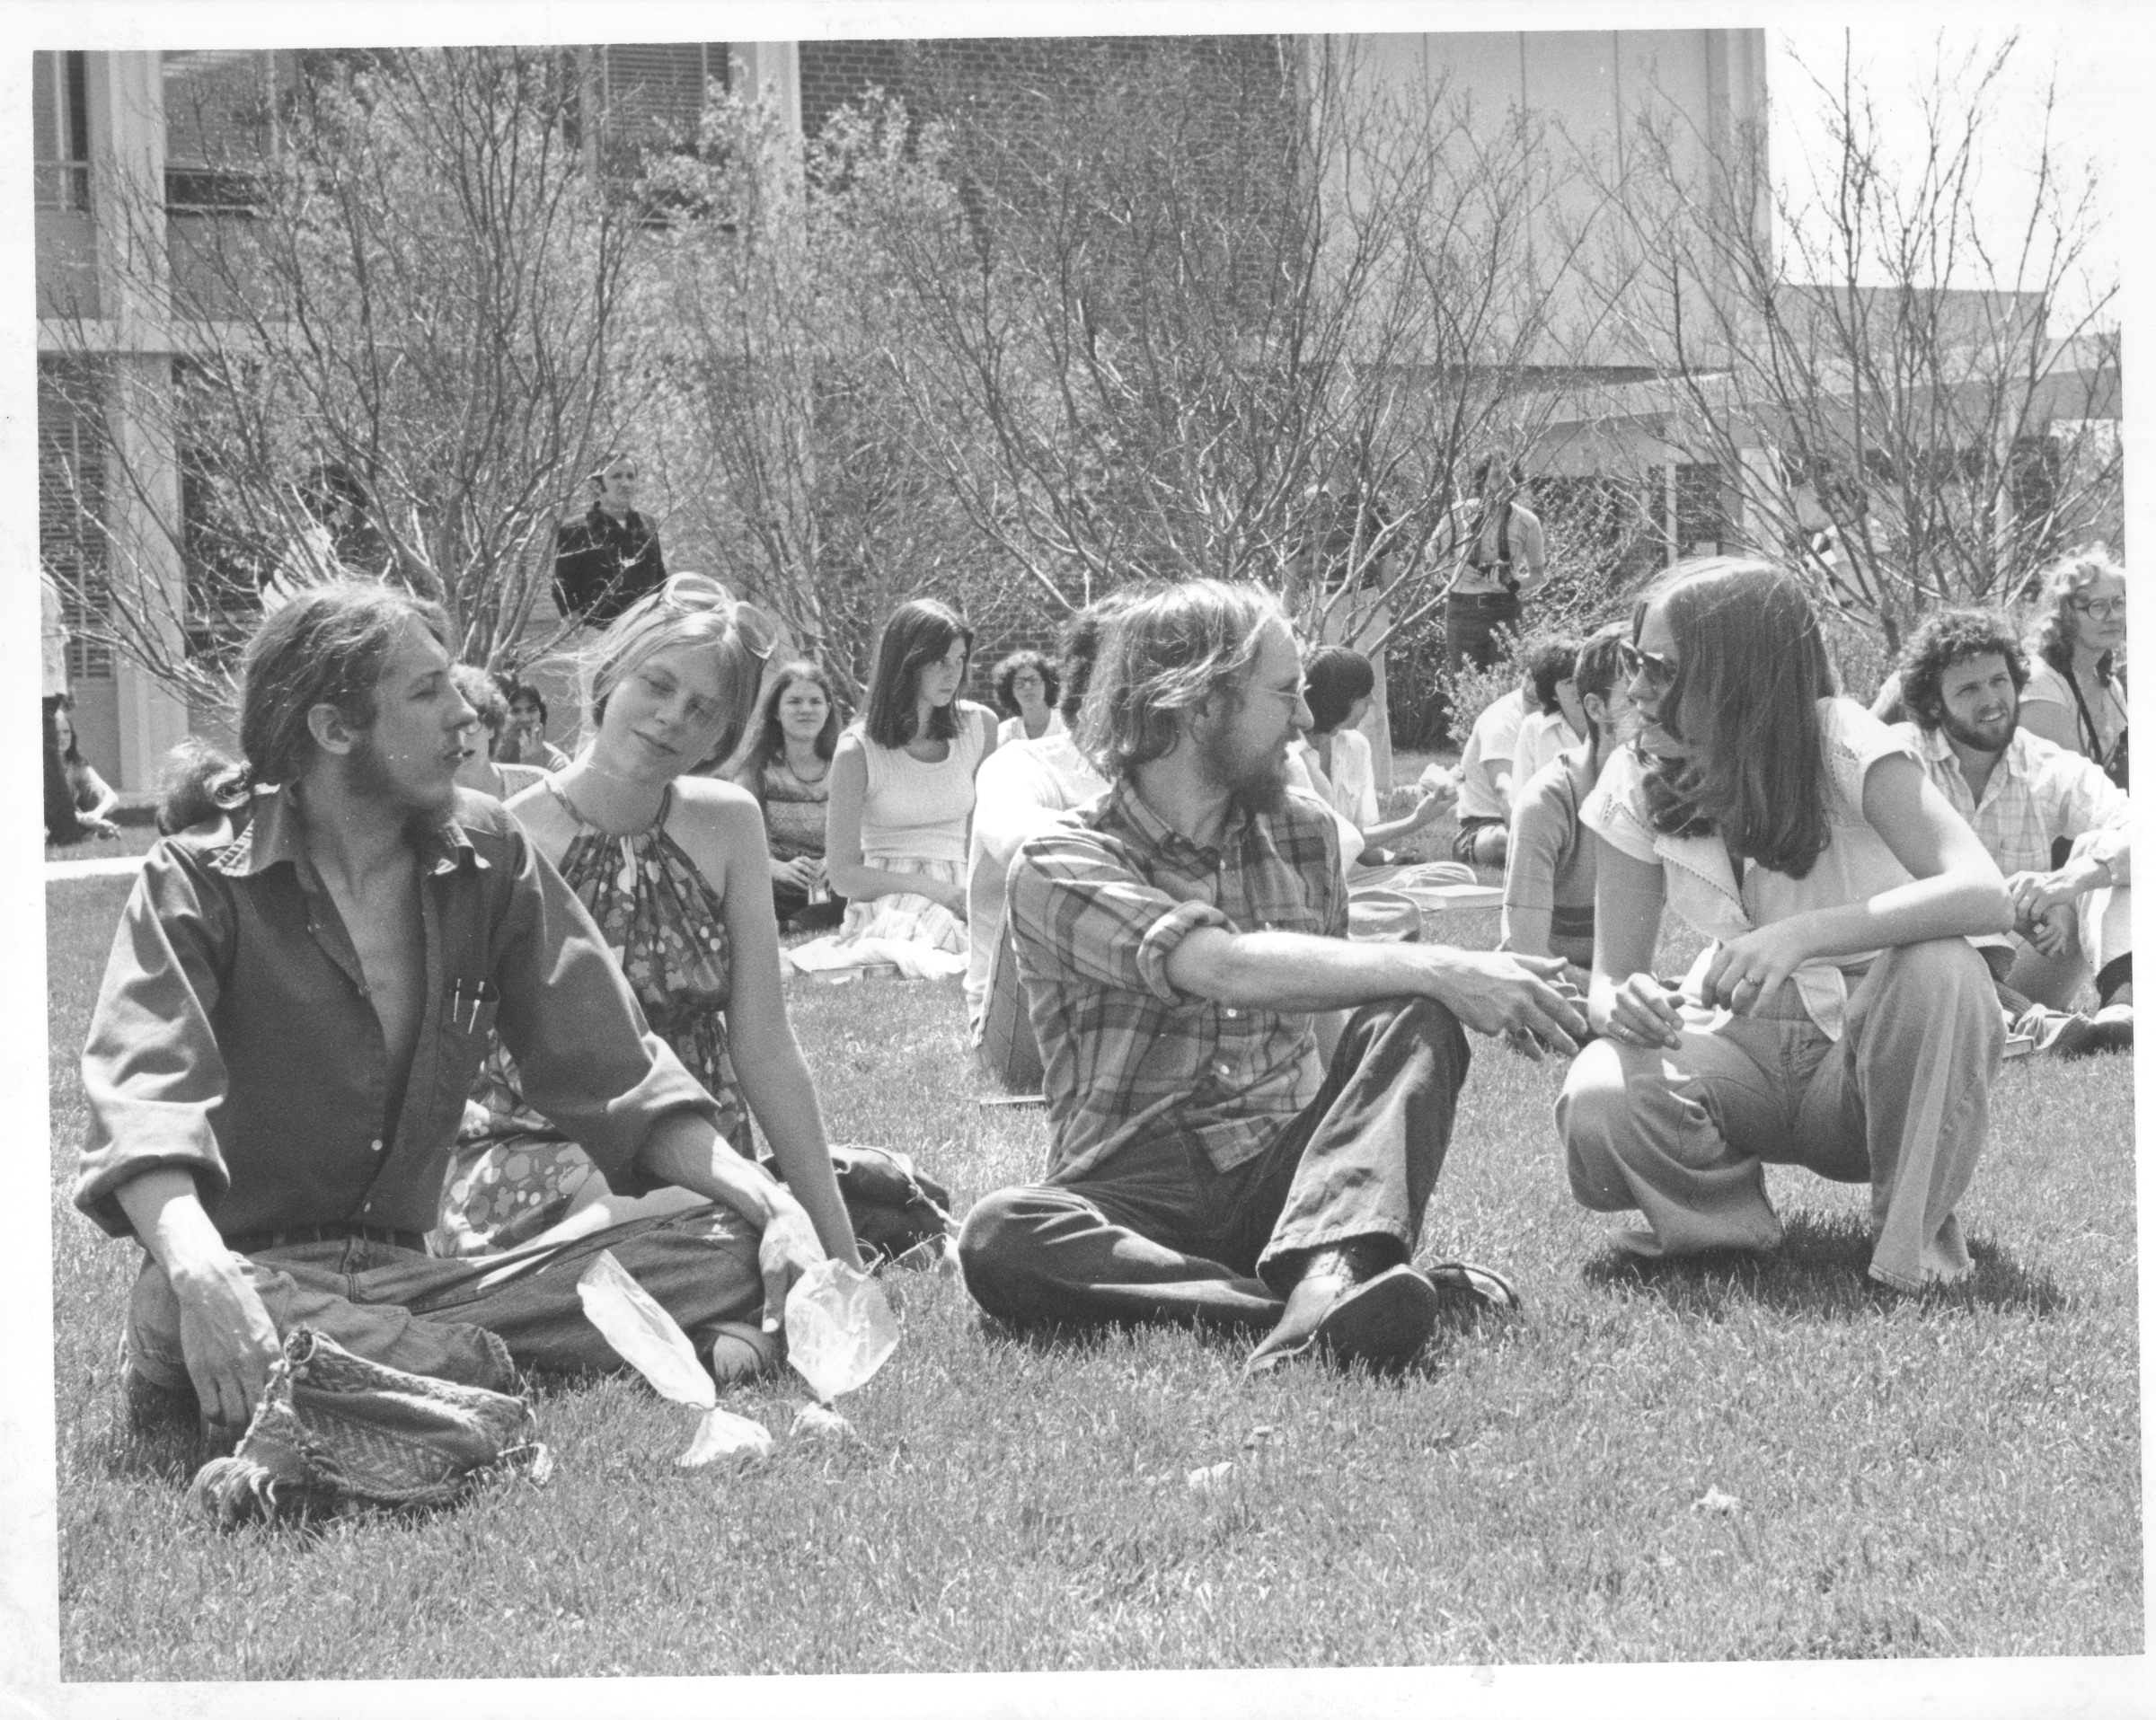 Fred Millar and students on the Quadrangle, April 5, 1977